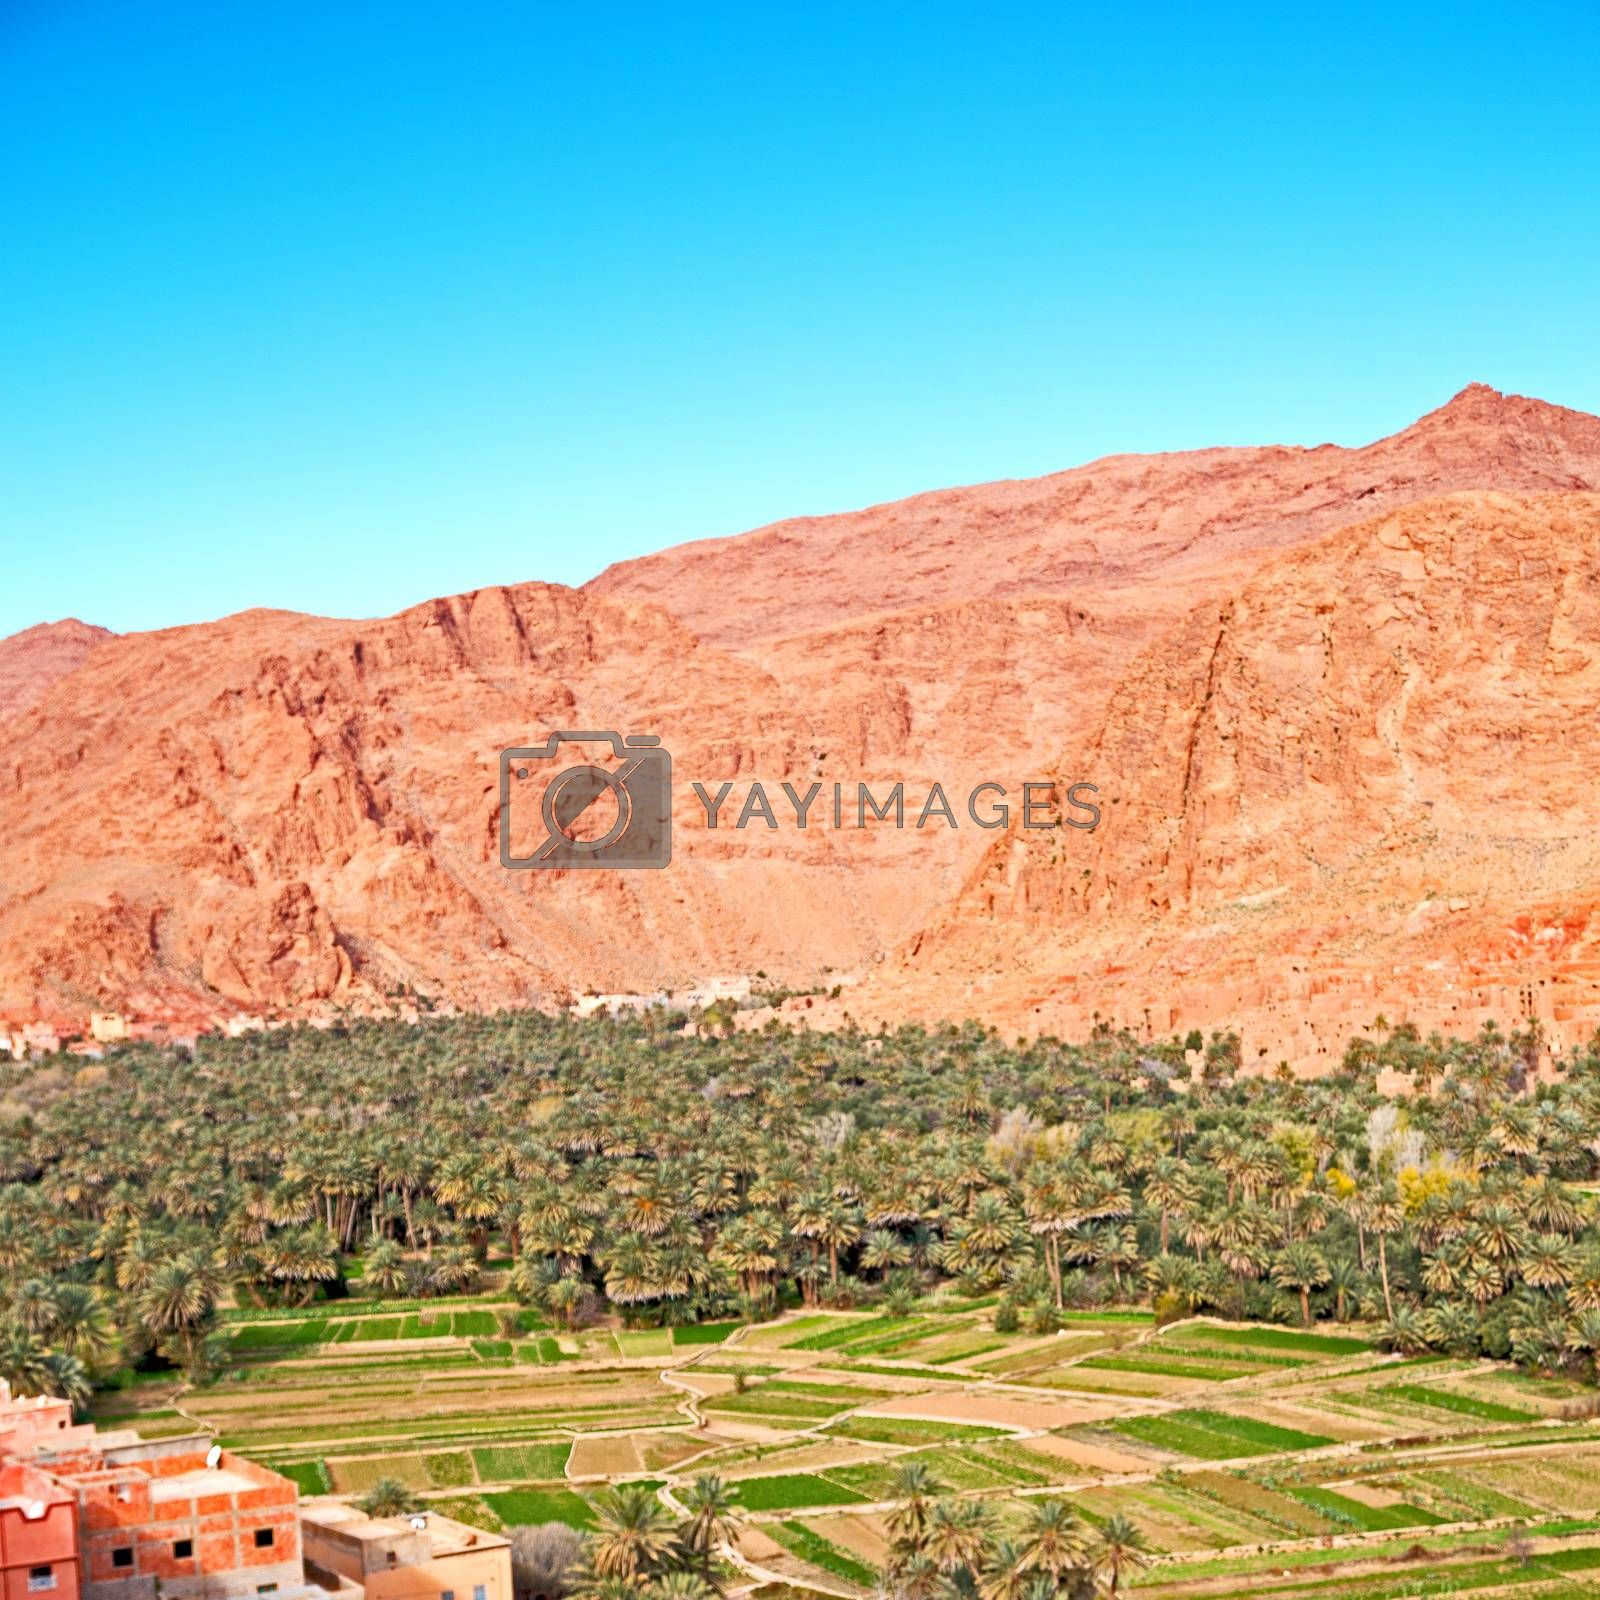 Royalty free image of  in todra gorge morocco africa and  village by lkpro